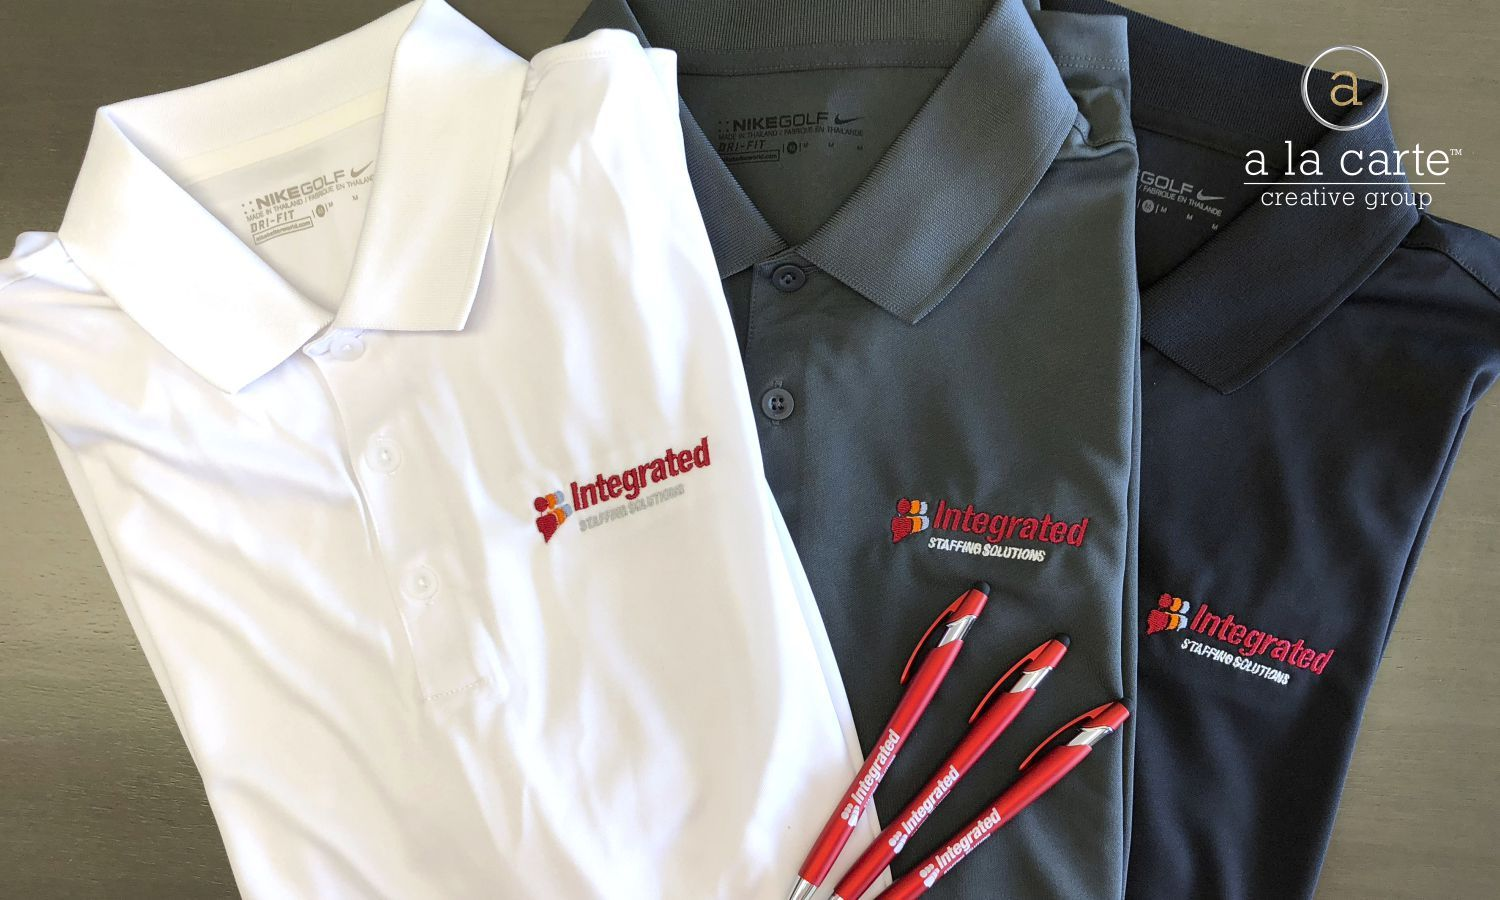 Integrated Staffing Solutions Knows Promoting Their Brand Is